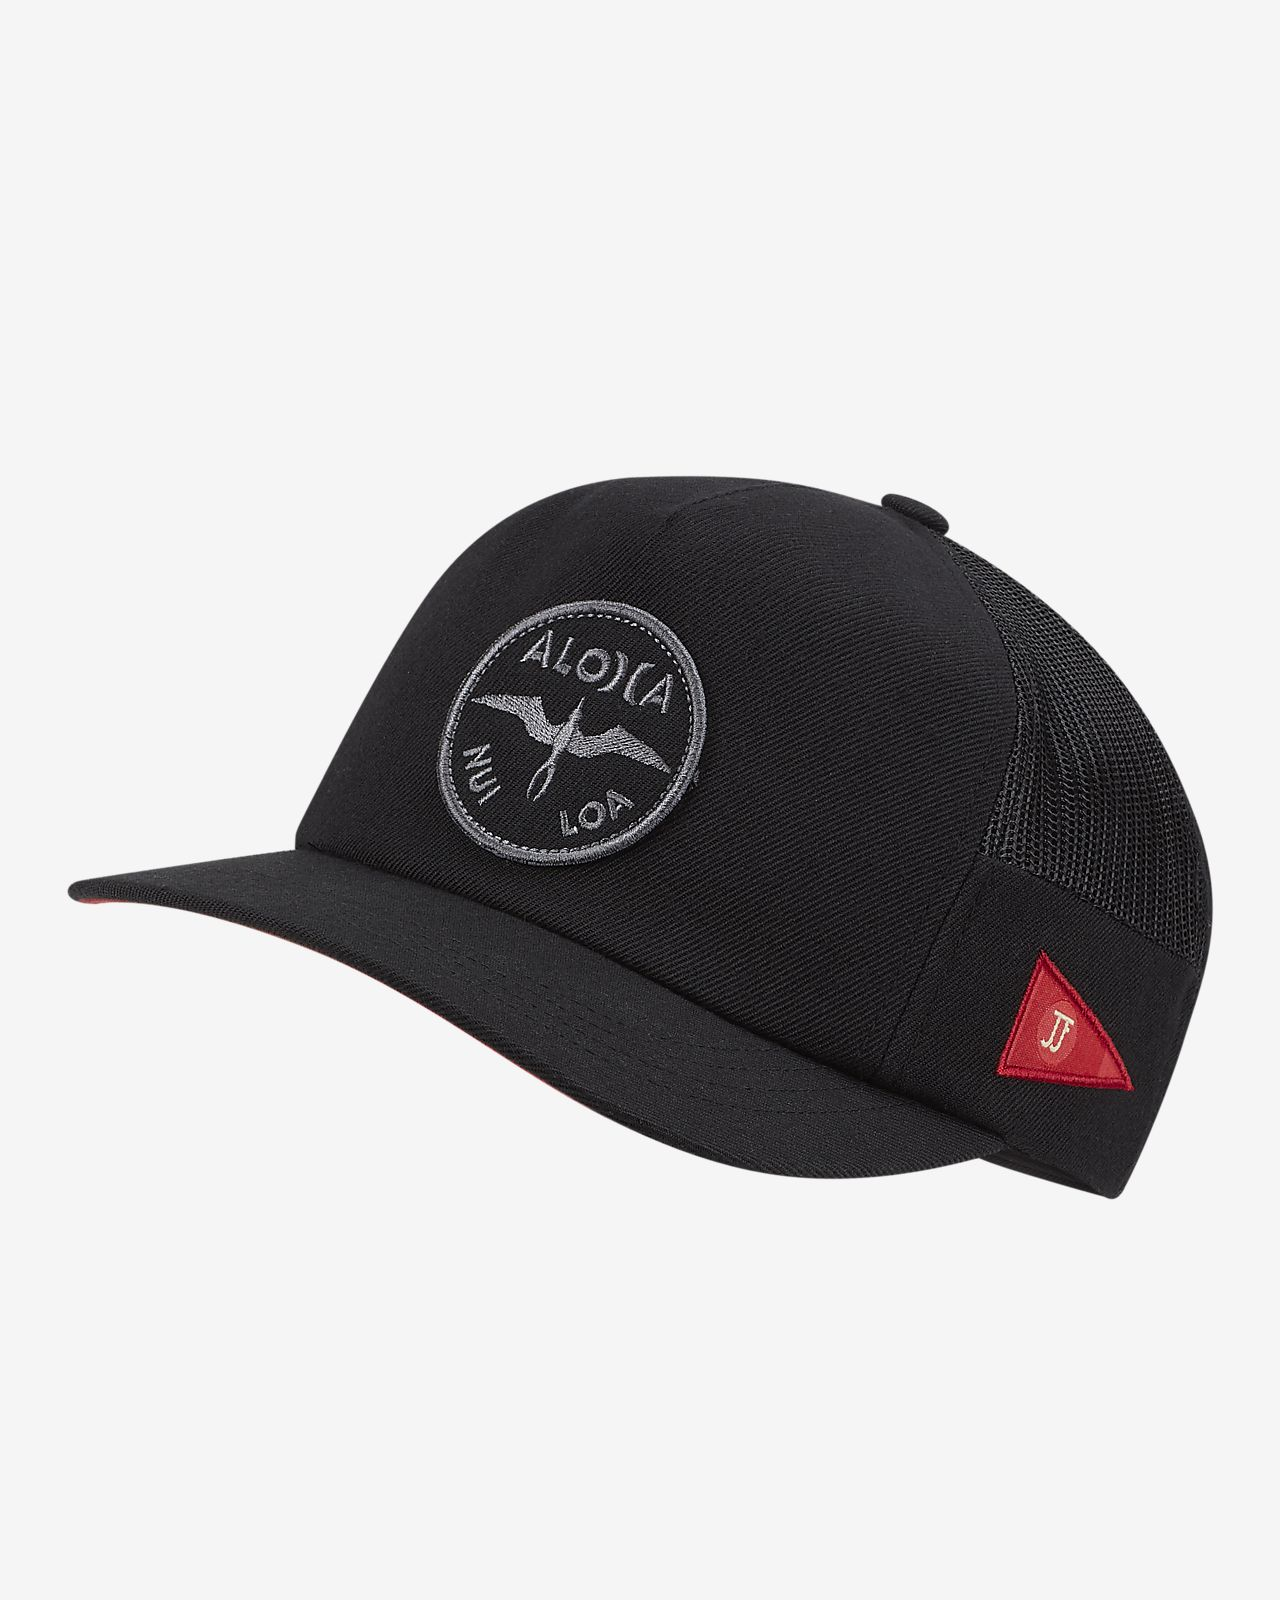 fb0be45b67589 Low Resolution Gorra Hurley JJF Aloha Gorra Hurley JJF Aloha